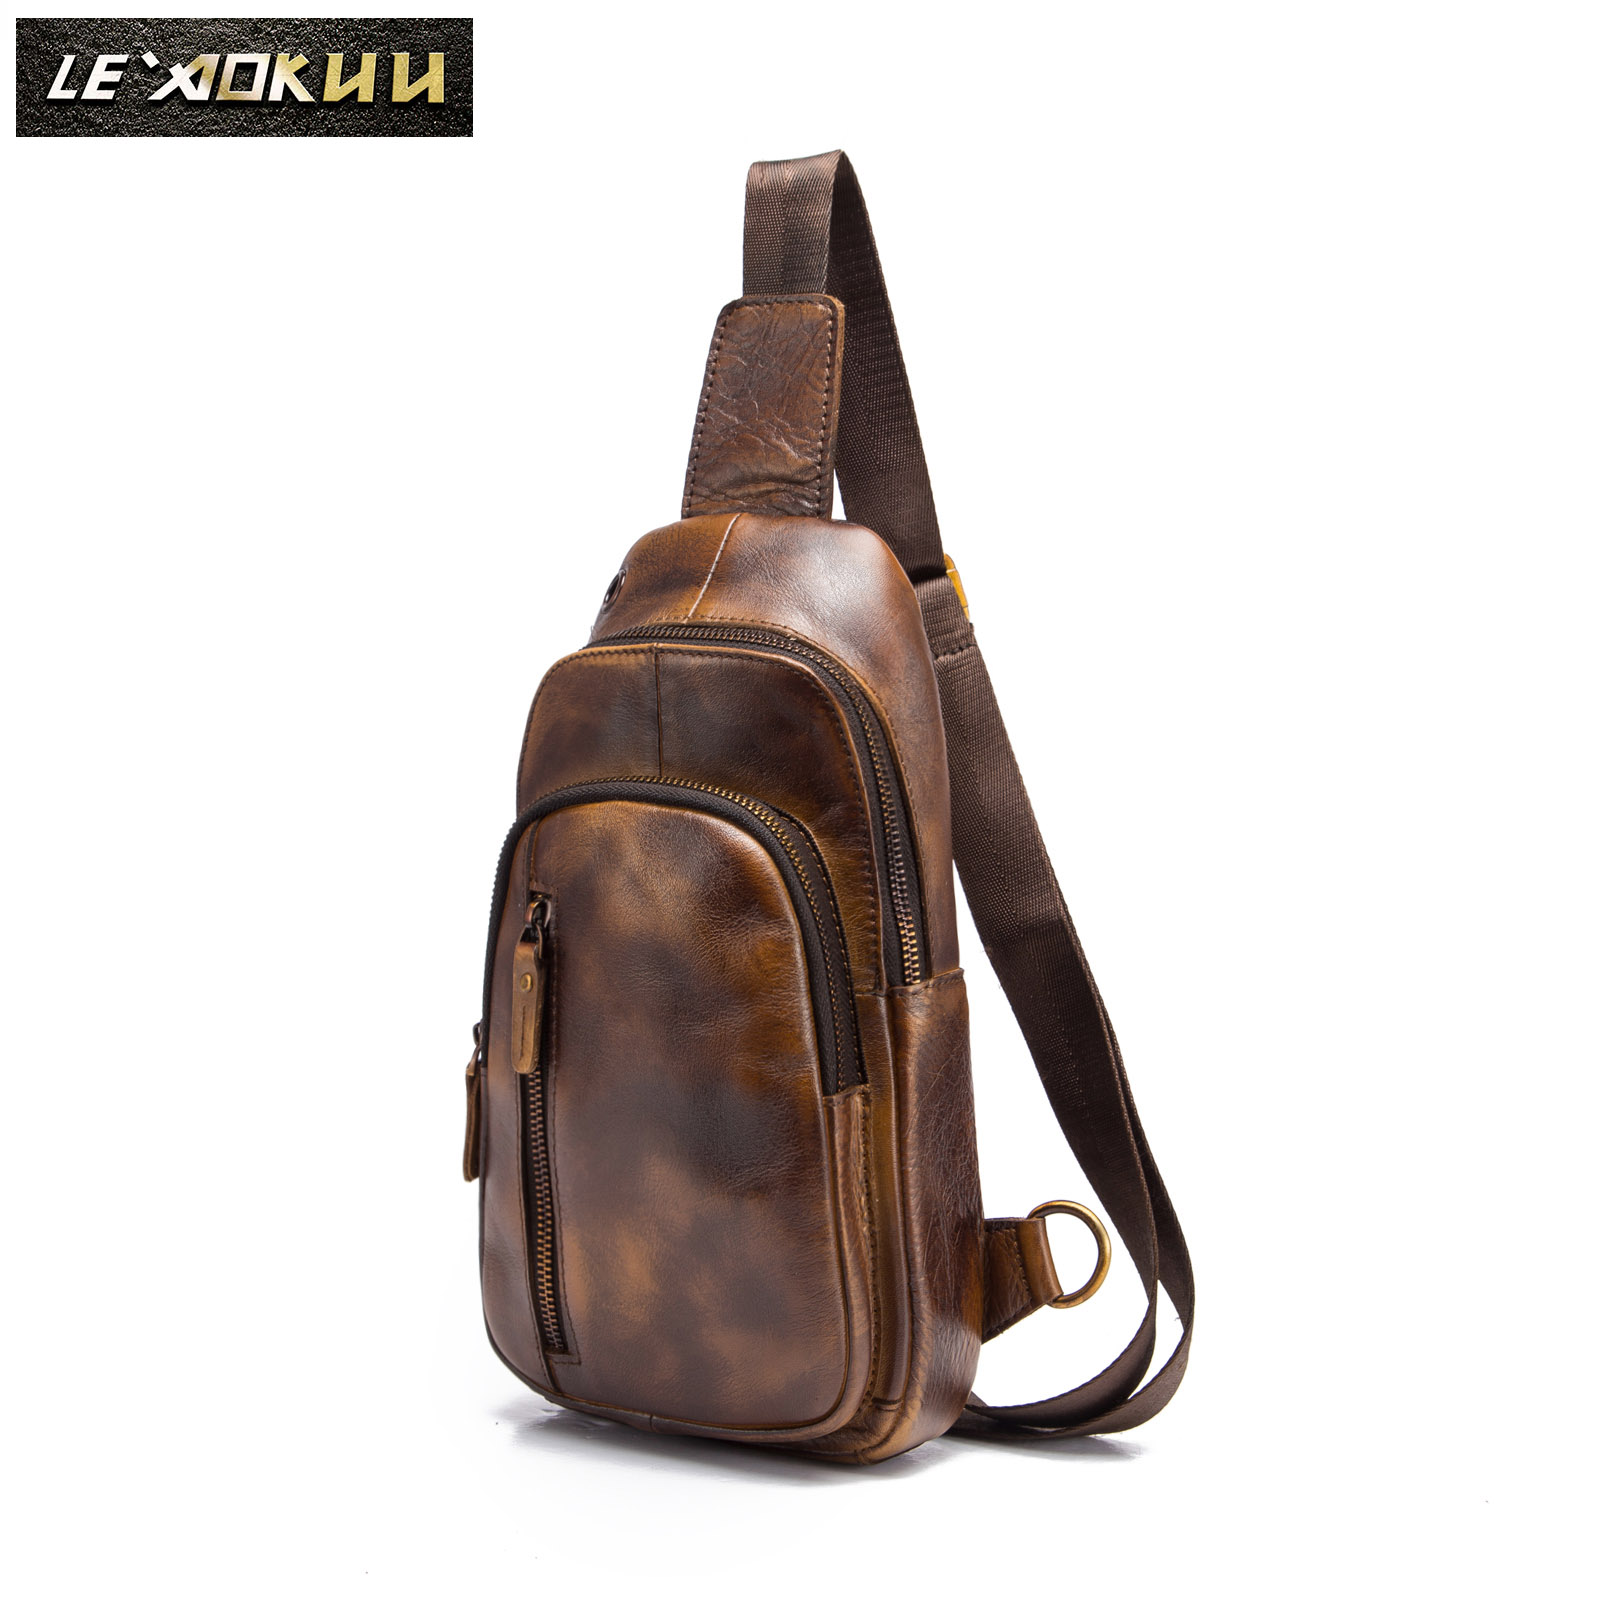 Men Original Leather Casual Fashion Chest Sling Bag Brown Design Travel Triangle One Shoulder Cross Body Bag Daypack Male 8005lb